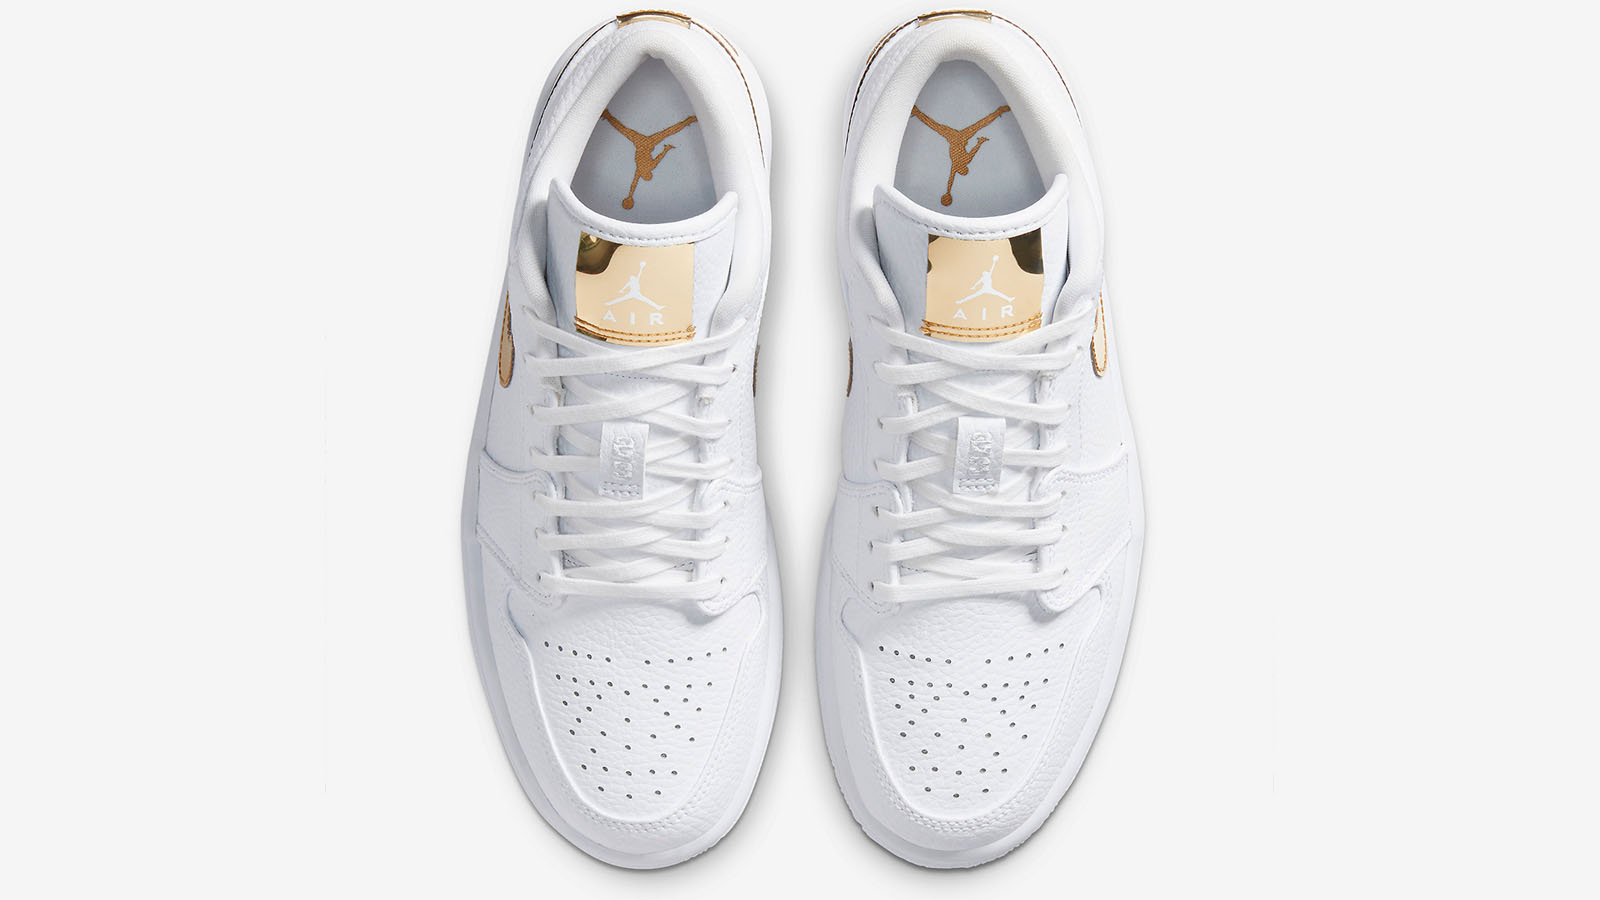 AJ1 low white and gold